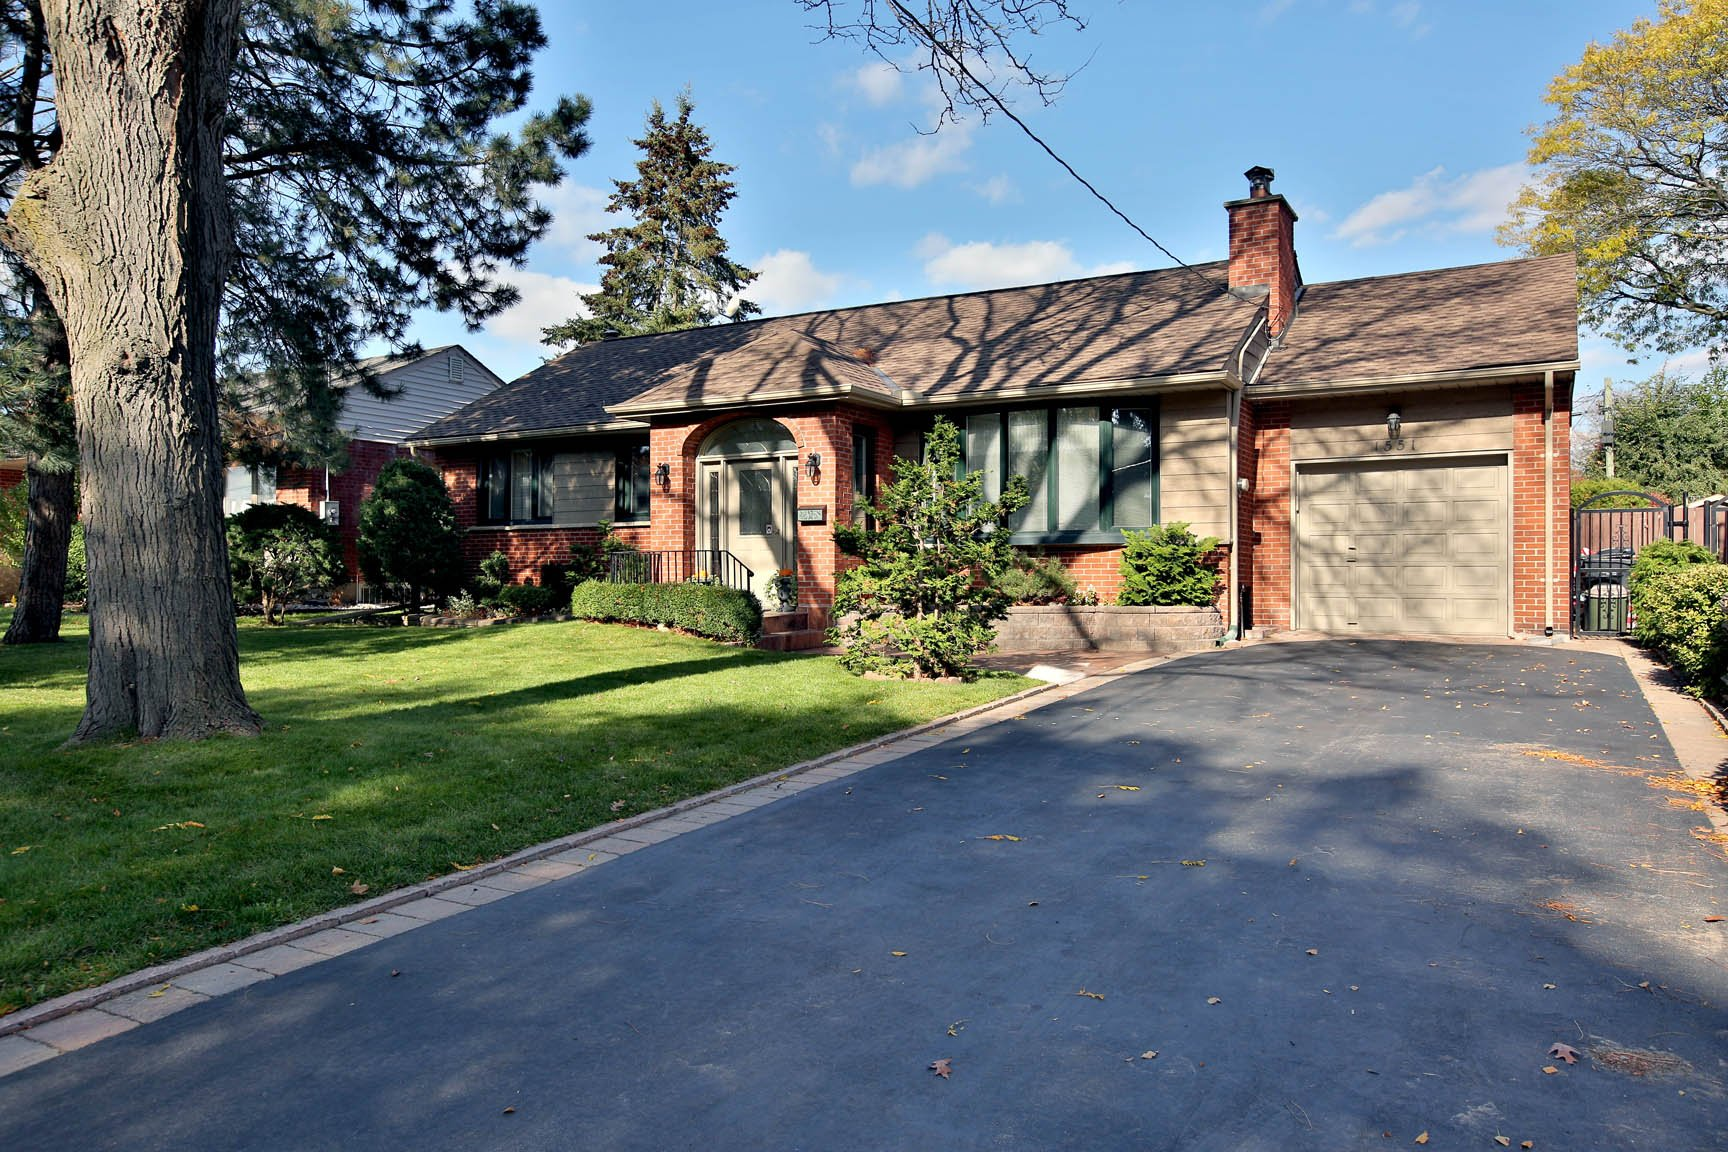 $1,249,000 • 1551 Clearwater Dr